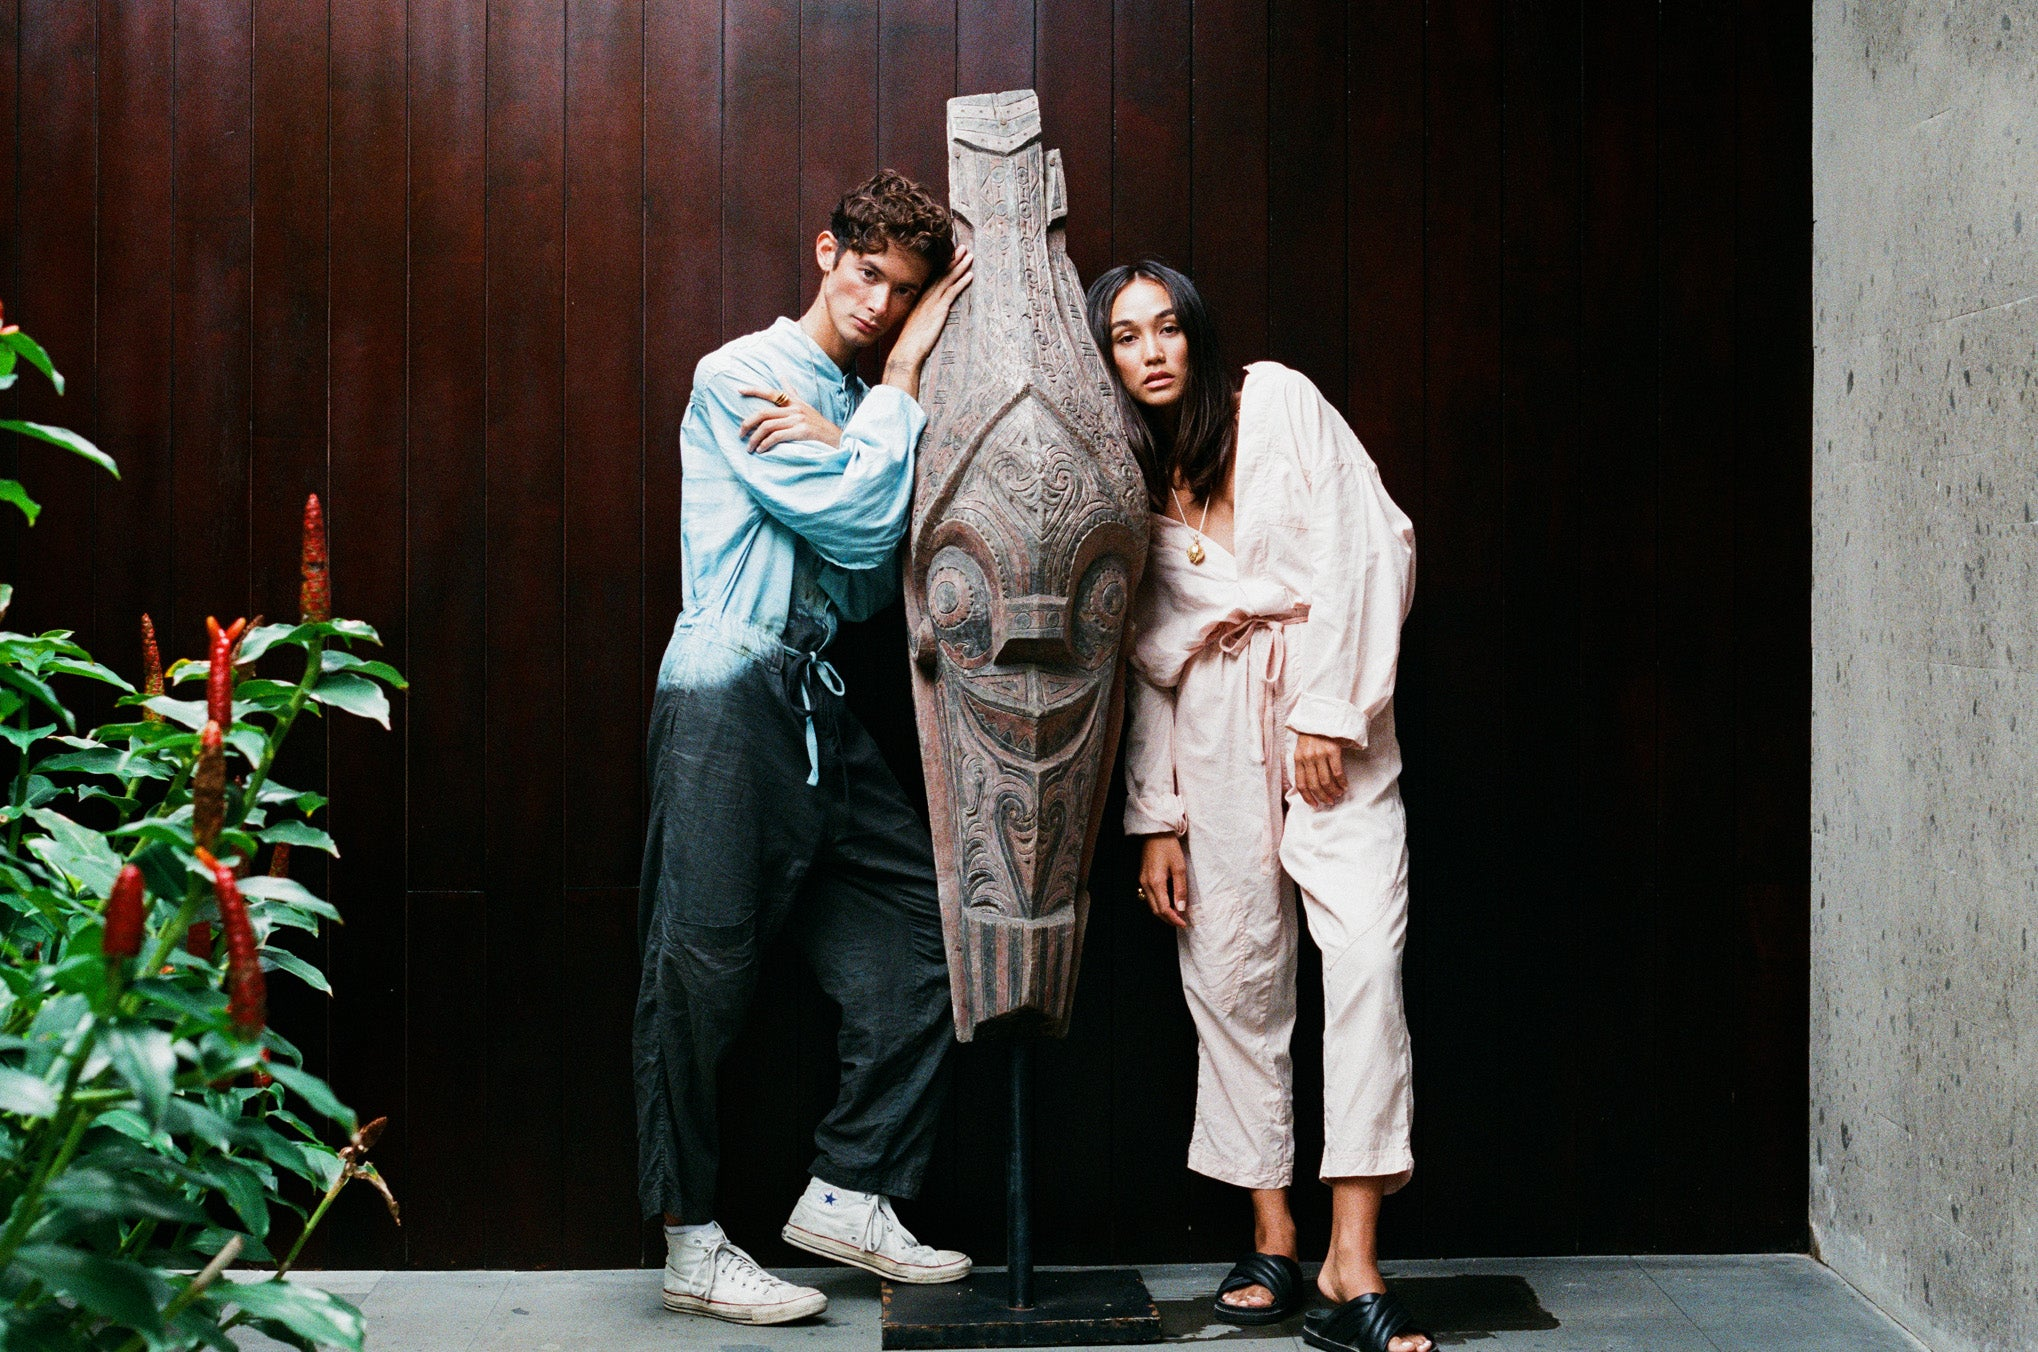 Lookbook Shot Johnny and Amira in Adventure Sail Jumpsuits